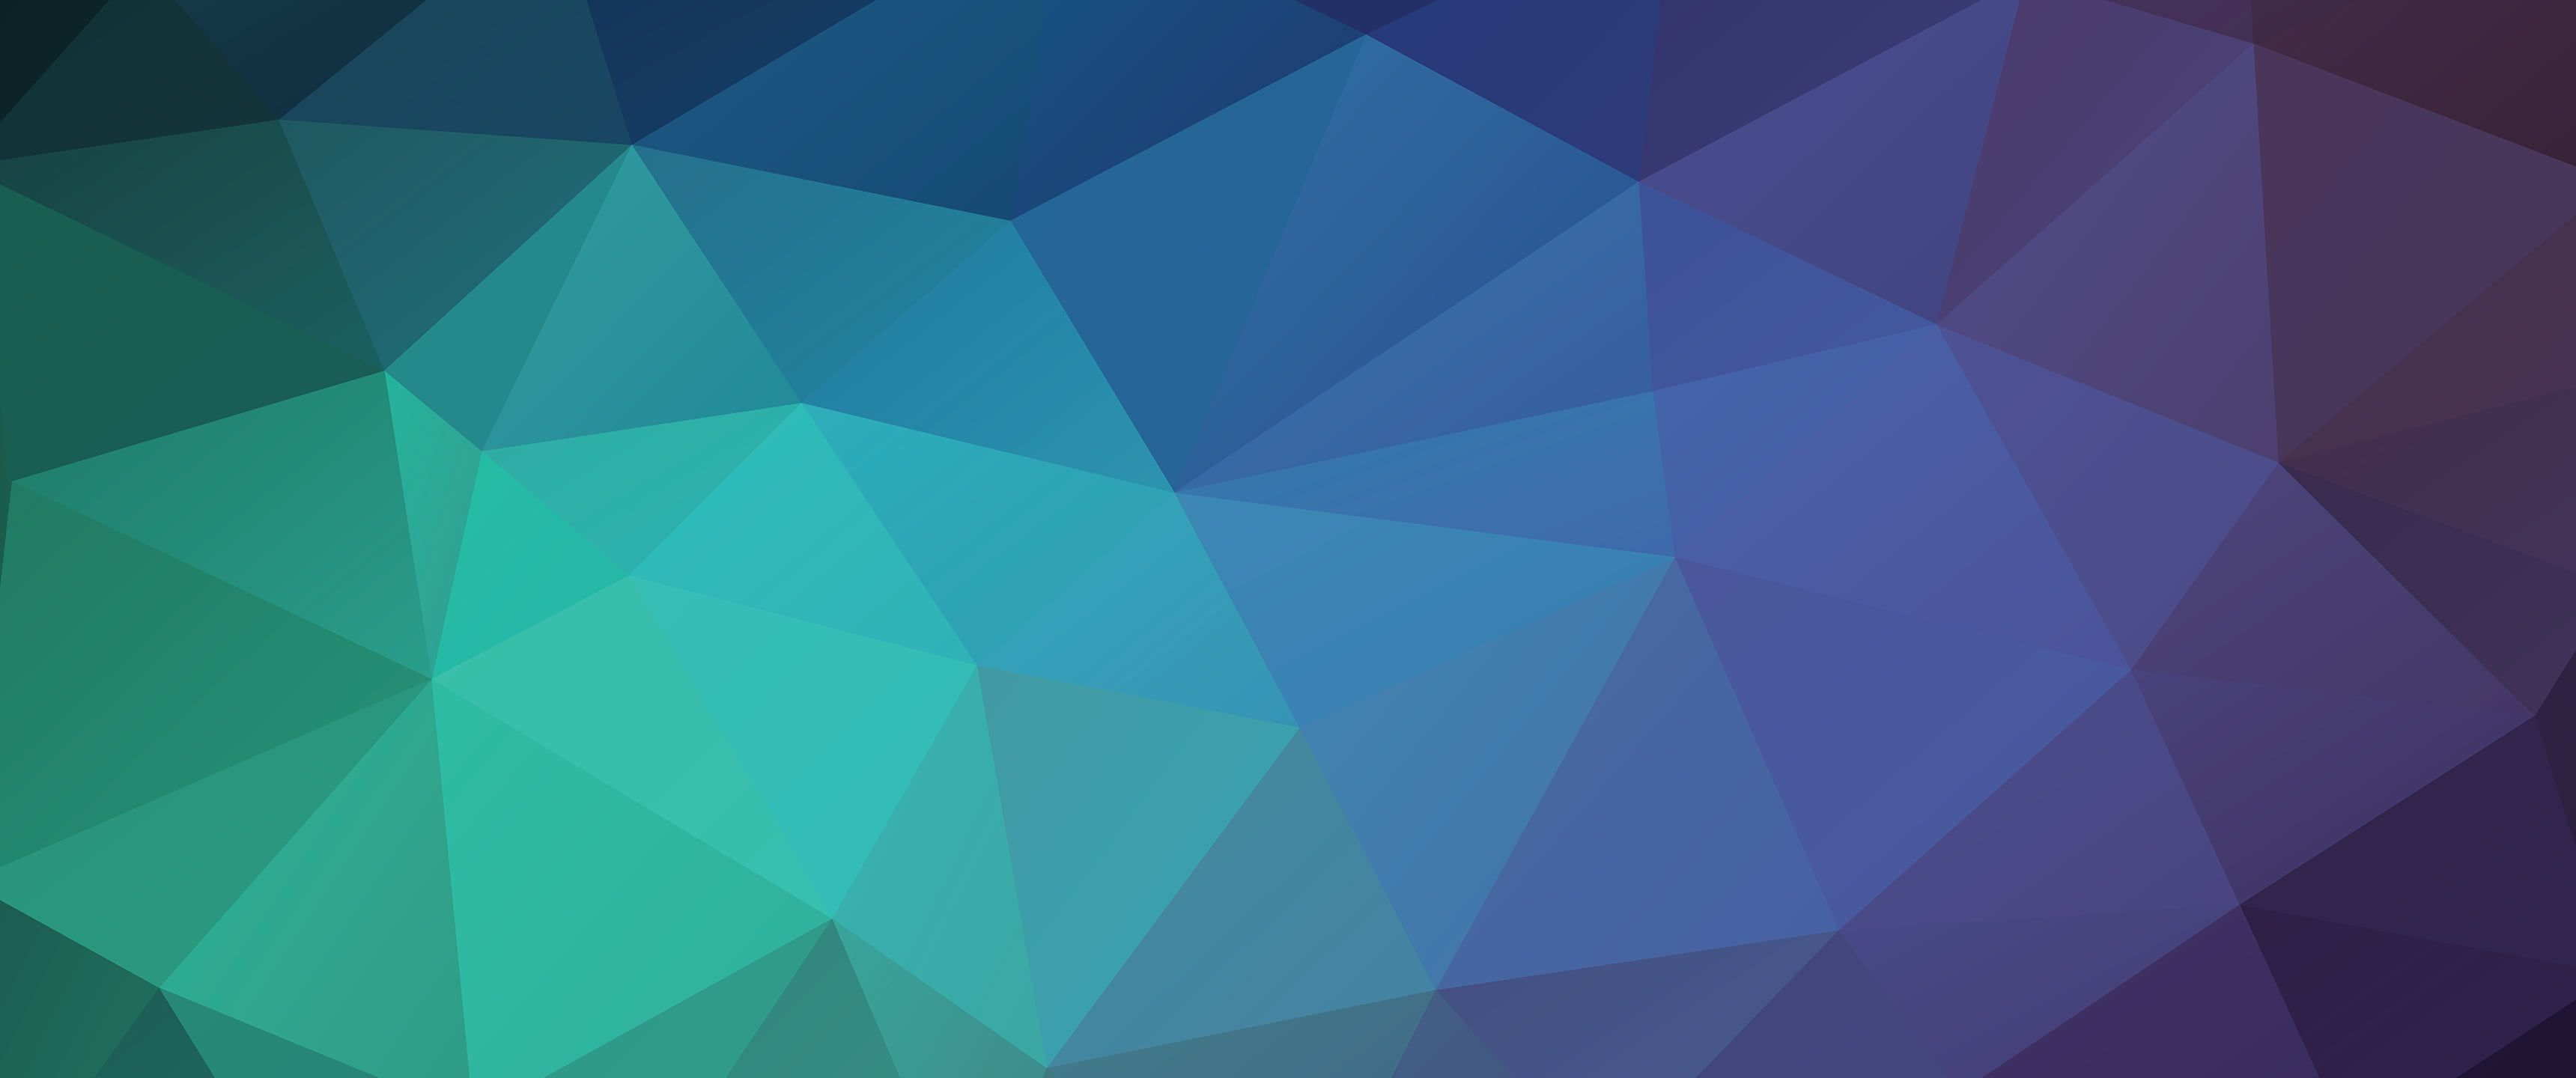 teal and purple digital wallpaper abstract low poly 2K